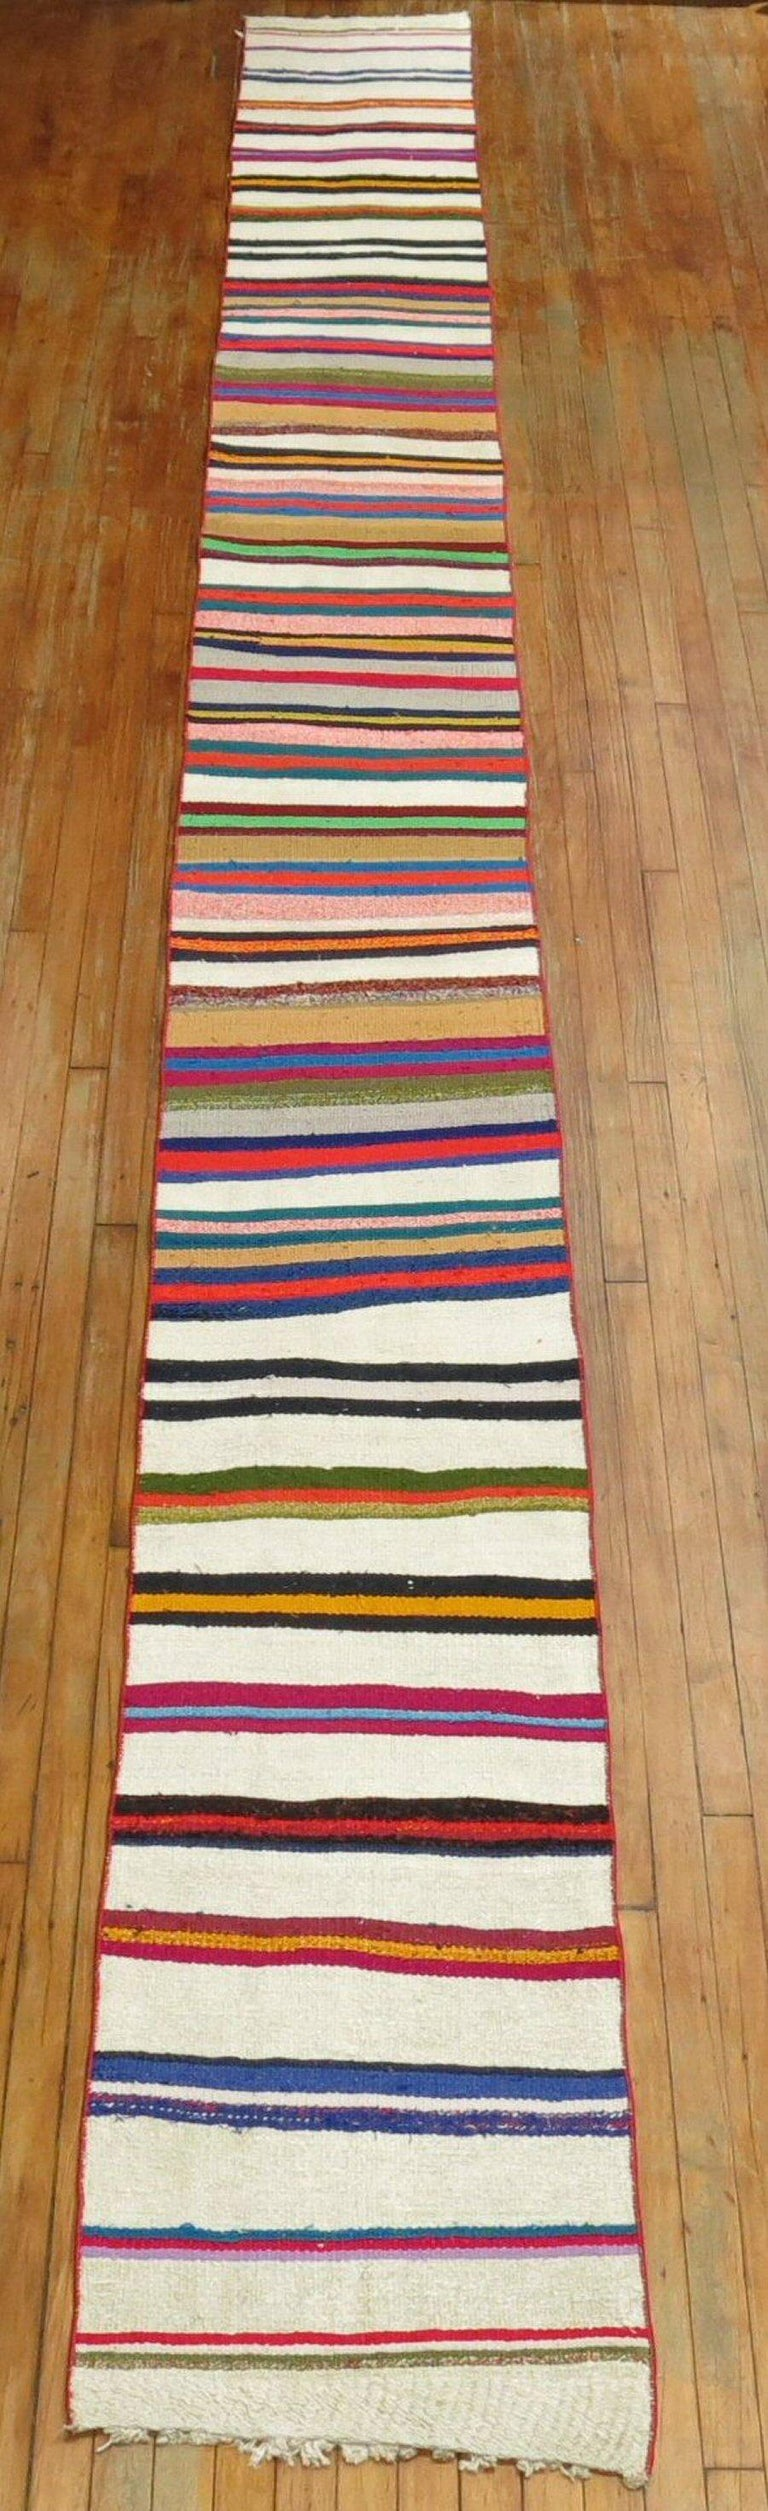 Long Narrow Bright Turkish Kilim Runner For Sale 3